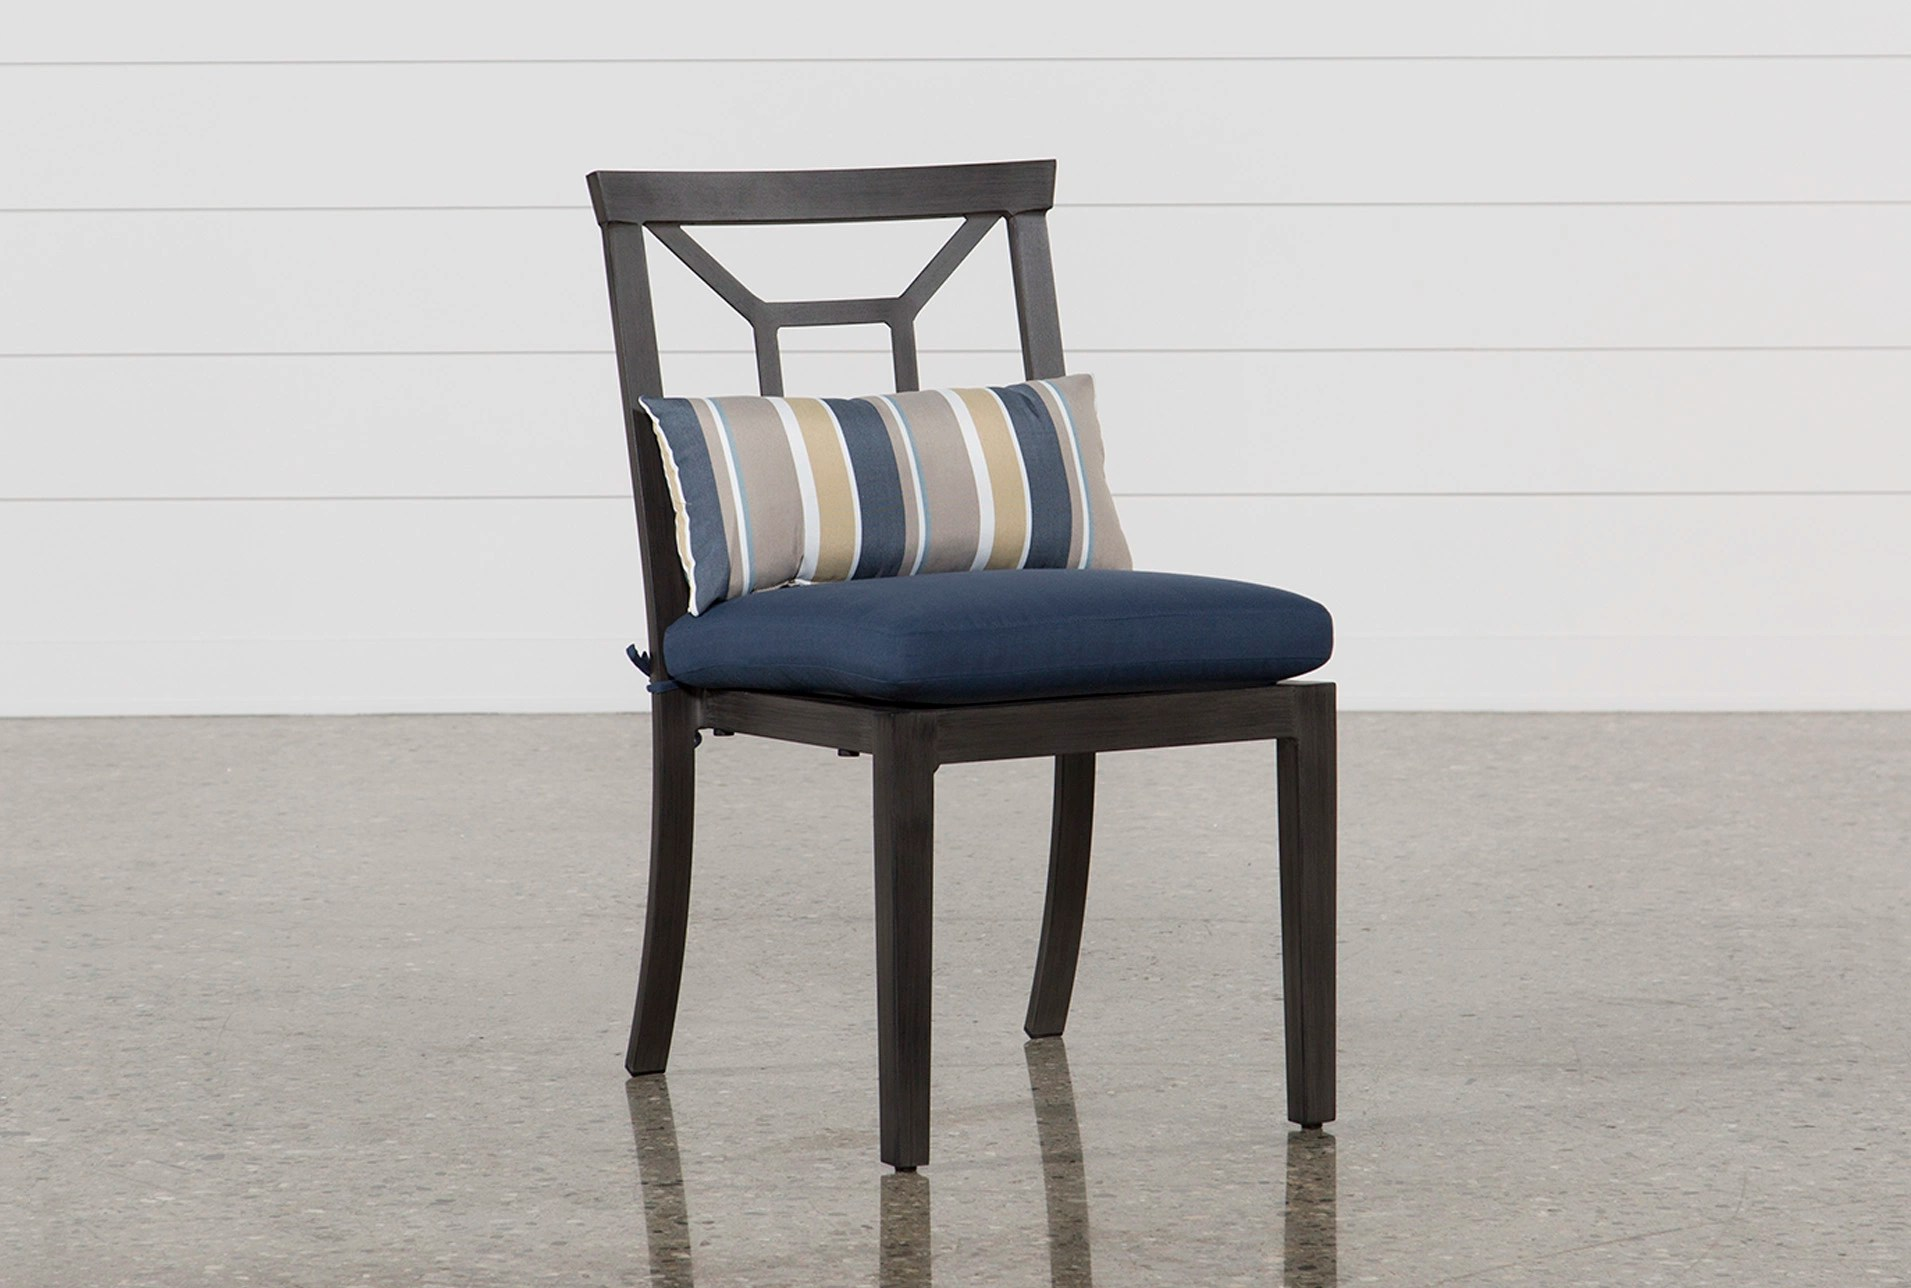 hight resolution of outdoor martinique navy dining chair qty 1 has been successfully added to your cart